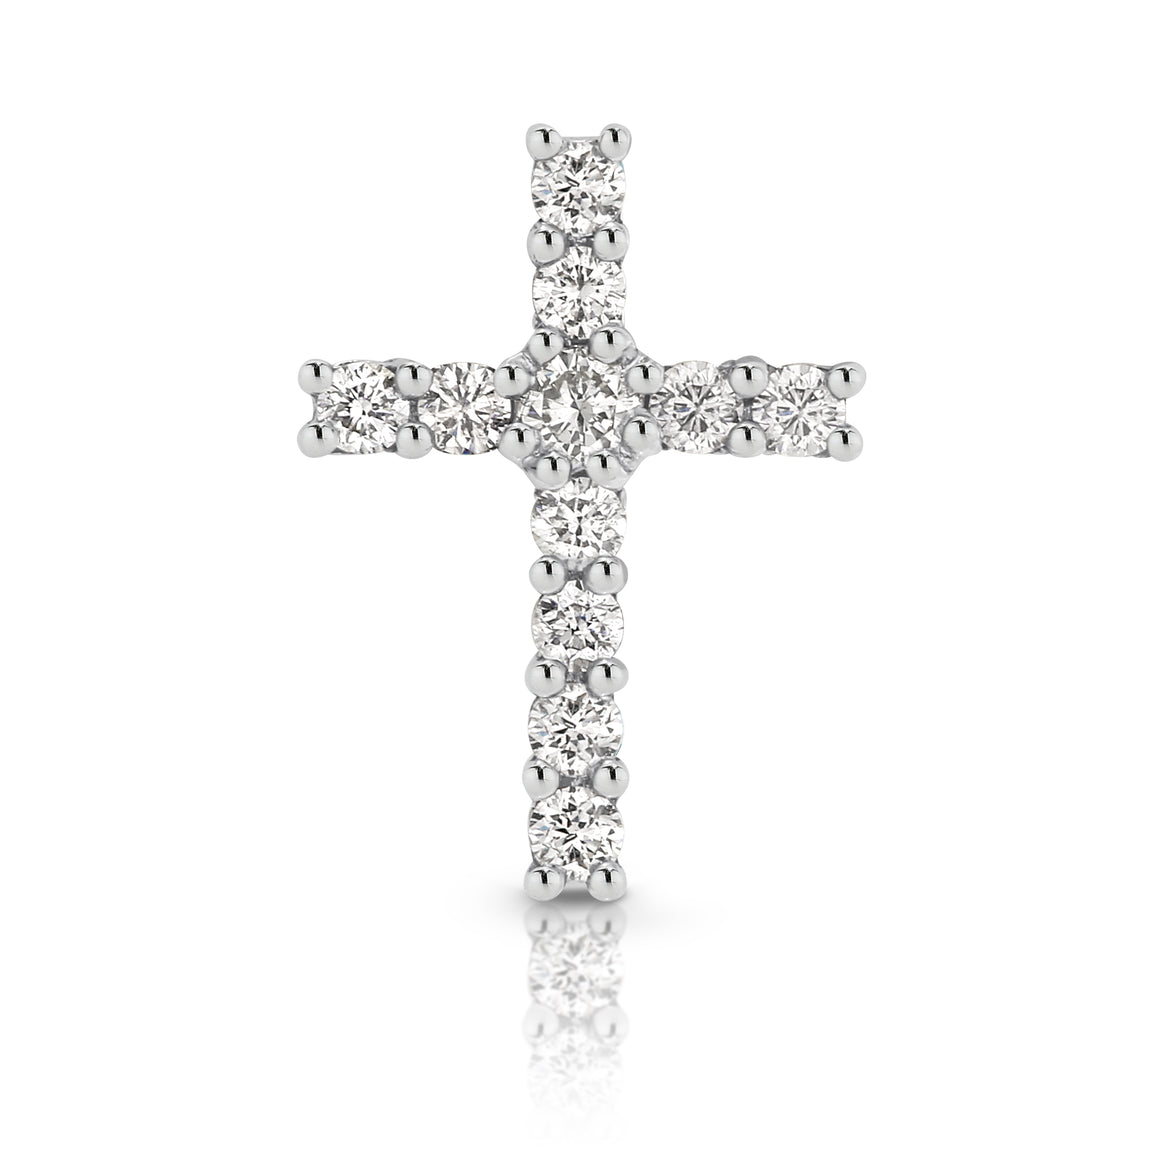 Diamond Mini 'Dia' Cross Pendant - Gemma Stone  ABN:51 621 127 866